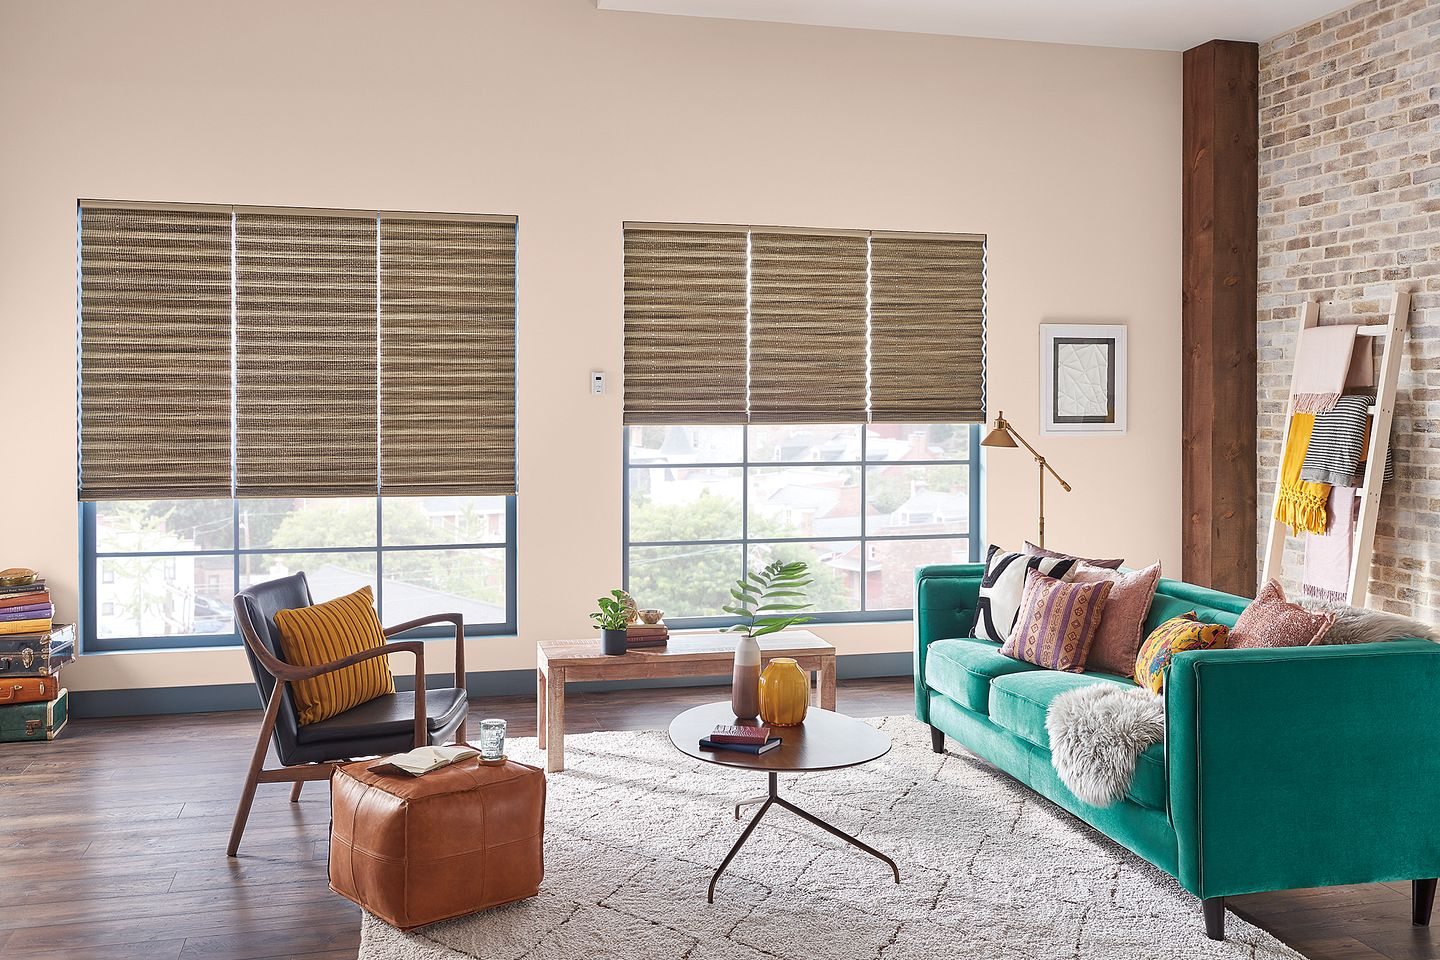 Bali Pleated Shades with Motorized Lift